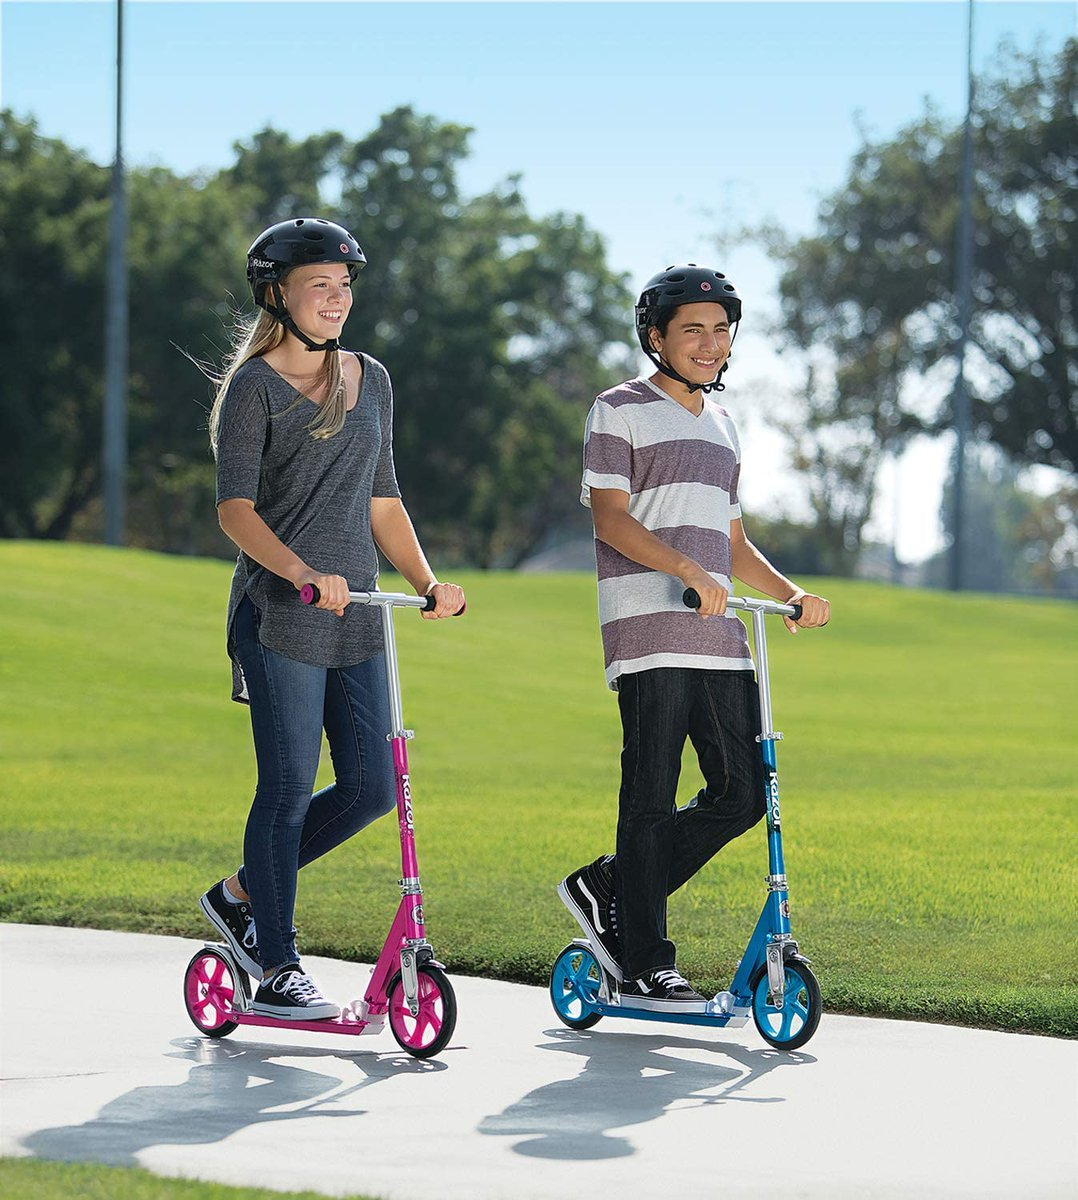 Razor A5 LUX Kick Scooter  Buy From Amazon:   #Scooter